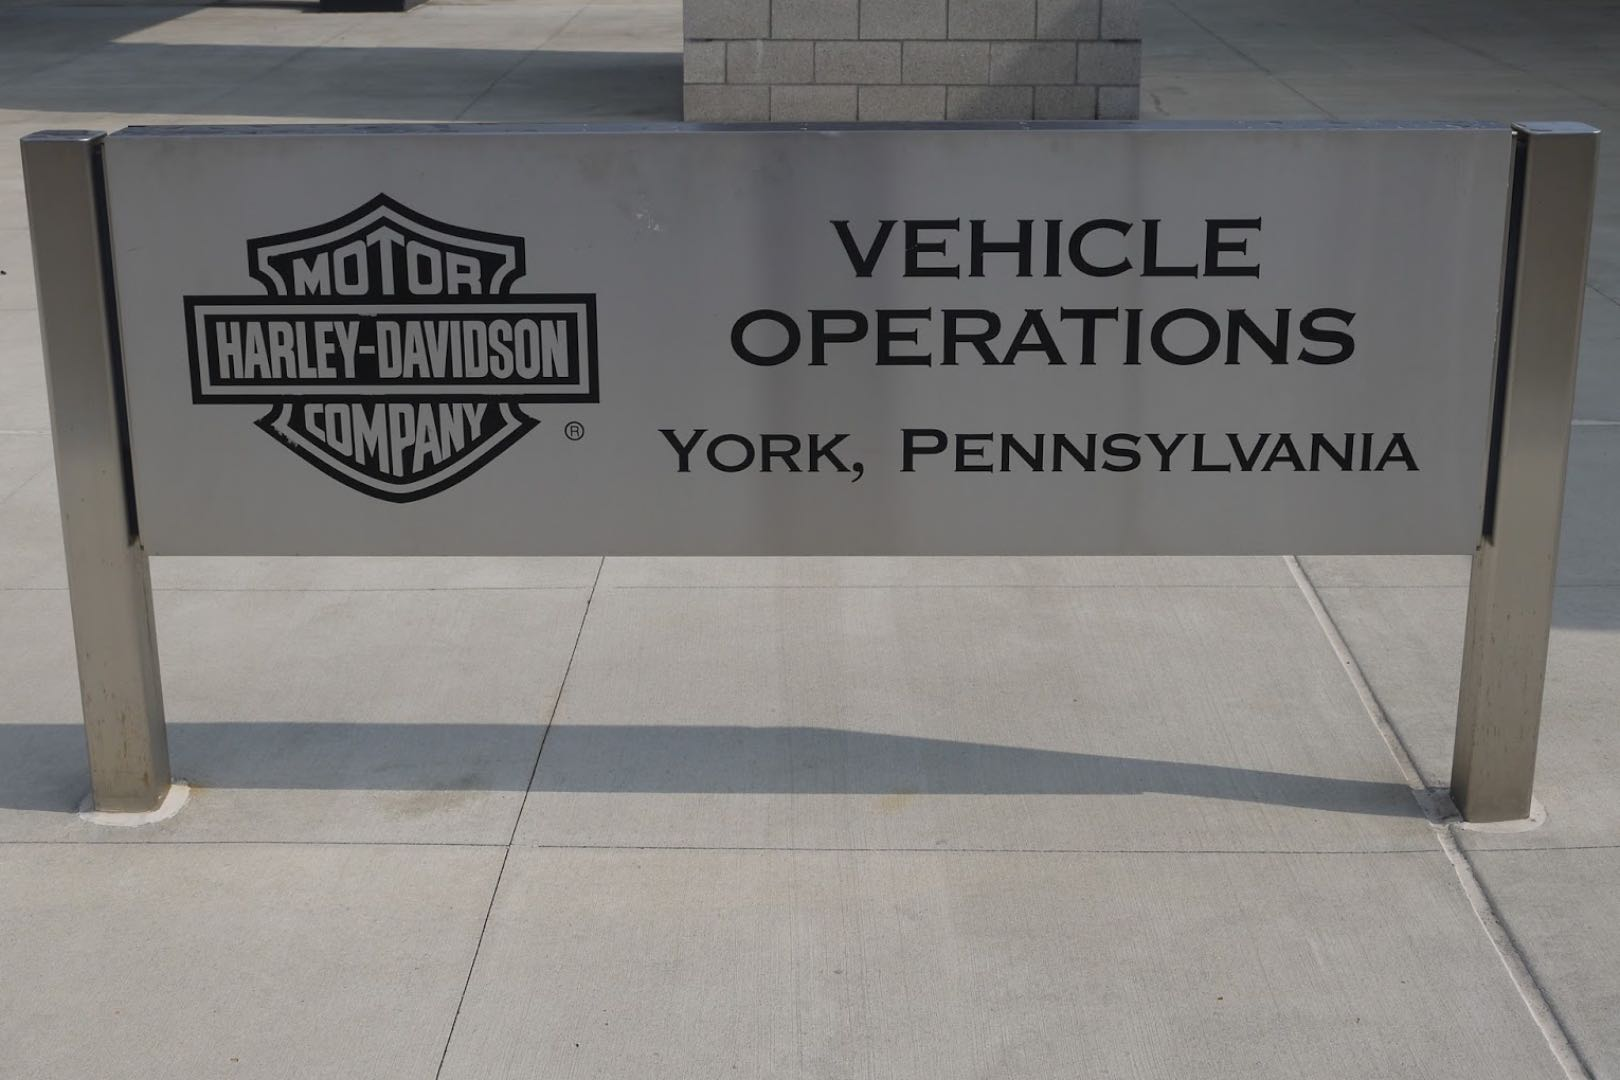 2017 Harley-Davidson Layoff: 118 Jobs Cut in York PA Plant